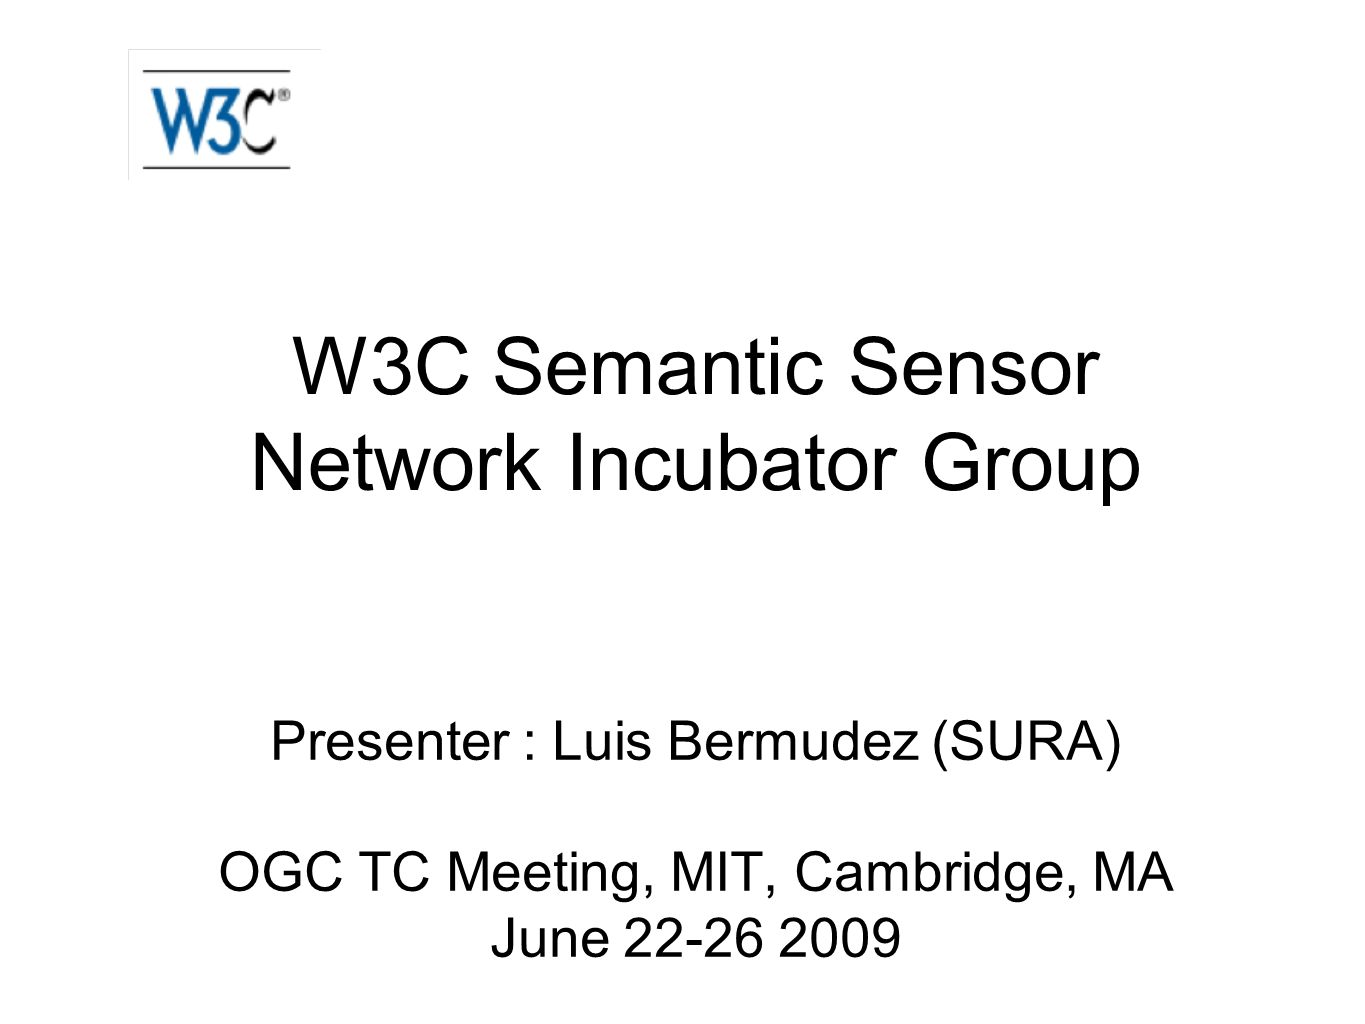 W3C Incubator Activity Rapid start of work in an Incubator Group (XG) Lightweight process, initiated by W3C Members Rapid finish to produce an XG Report in under one year Smooth transition to the W3C Recommendation Track, if desired and approved Use of W3C infrastructure (mailing lists, communications tools, Web site) and consensus-building within W3C culture.